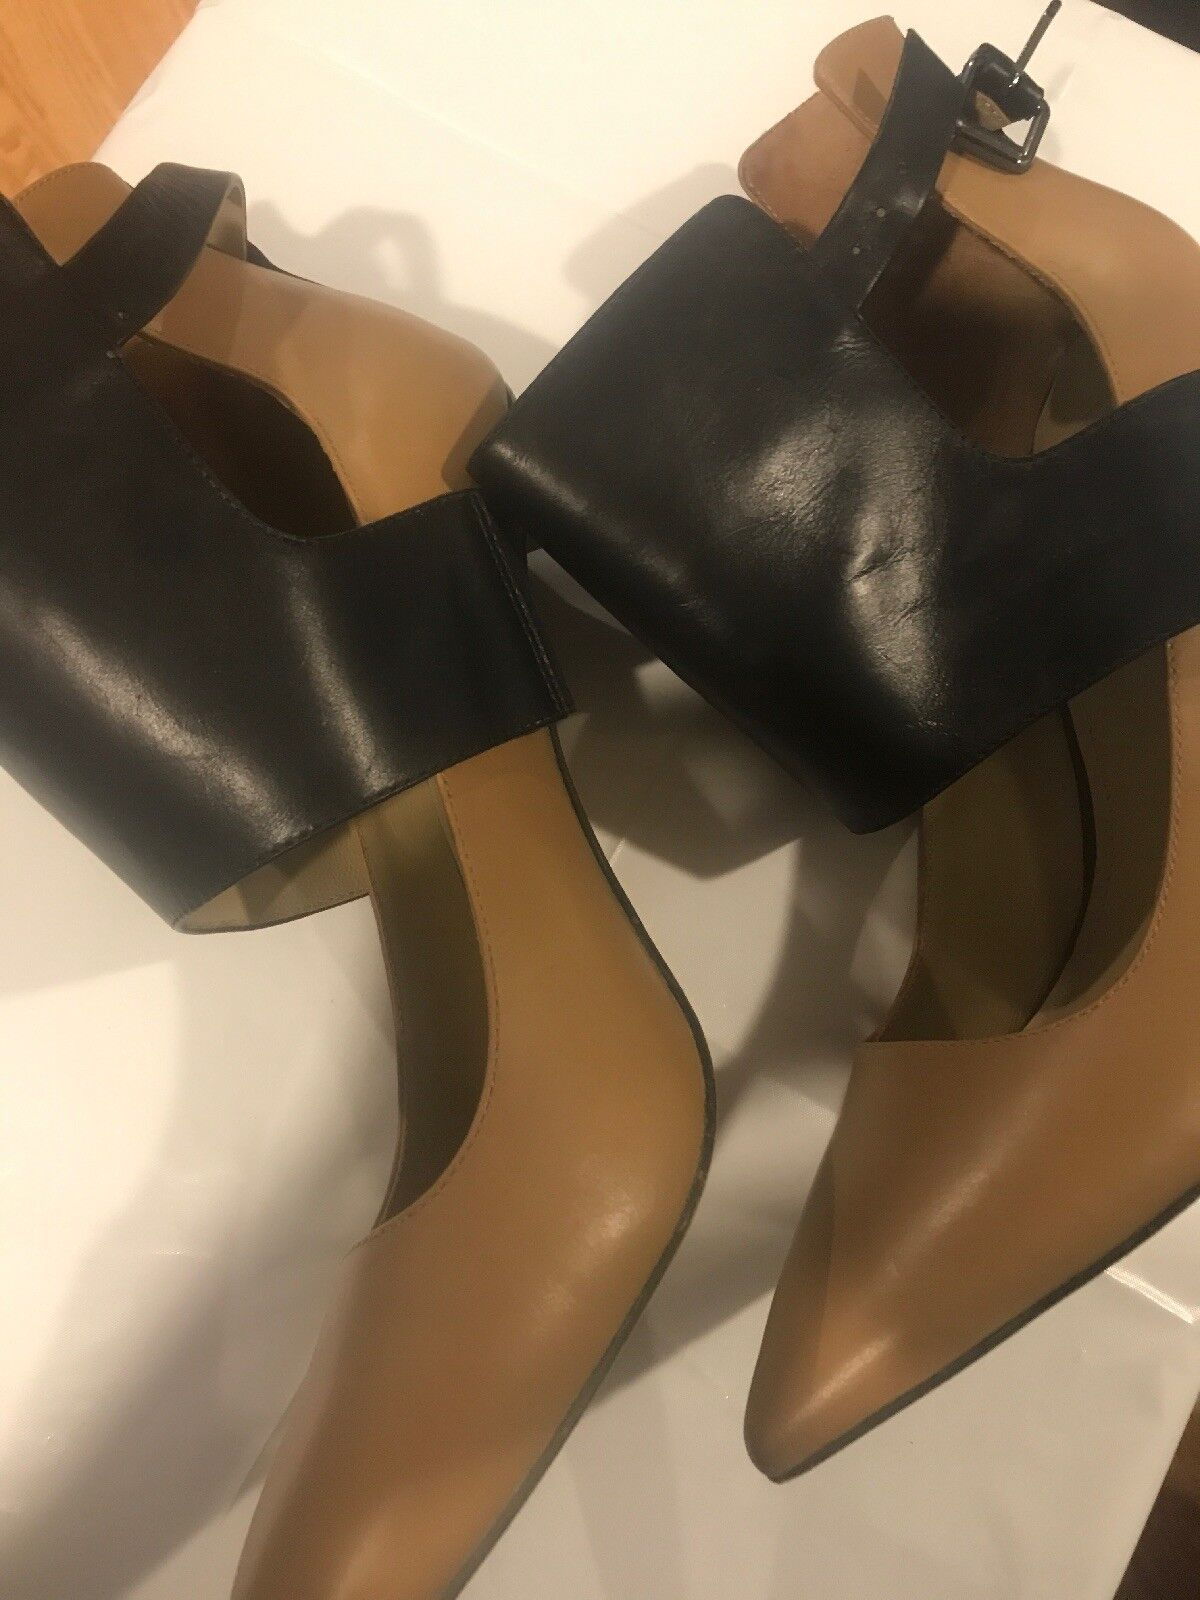 Kenneth Cole New York  Bonnet Pre-owned Pumps Heels Ankle Cuff Schuhes 9.5 M Pre-owned Bonnet fdb3f2